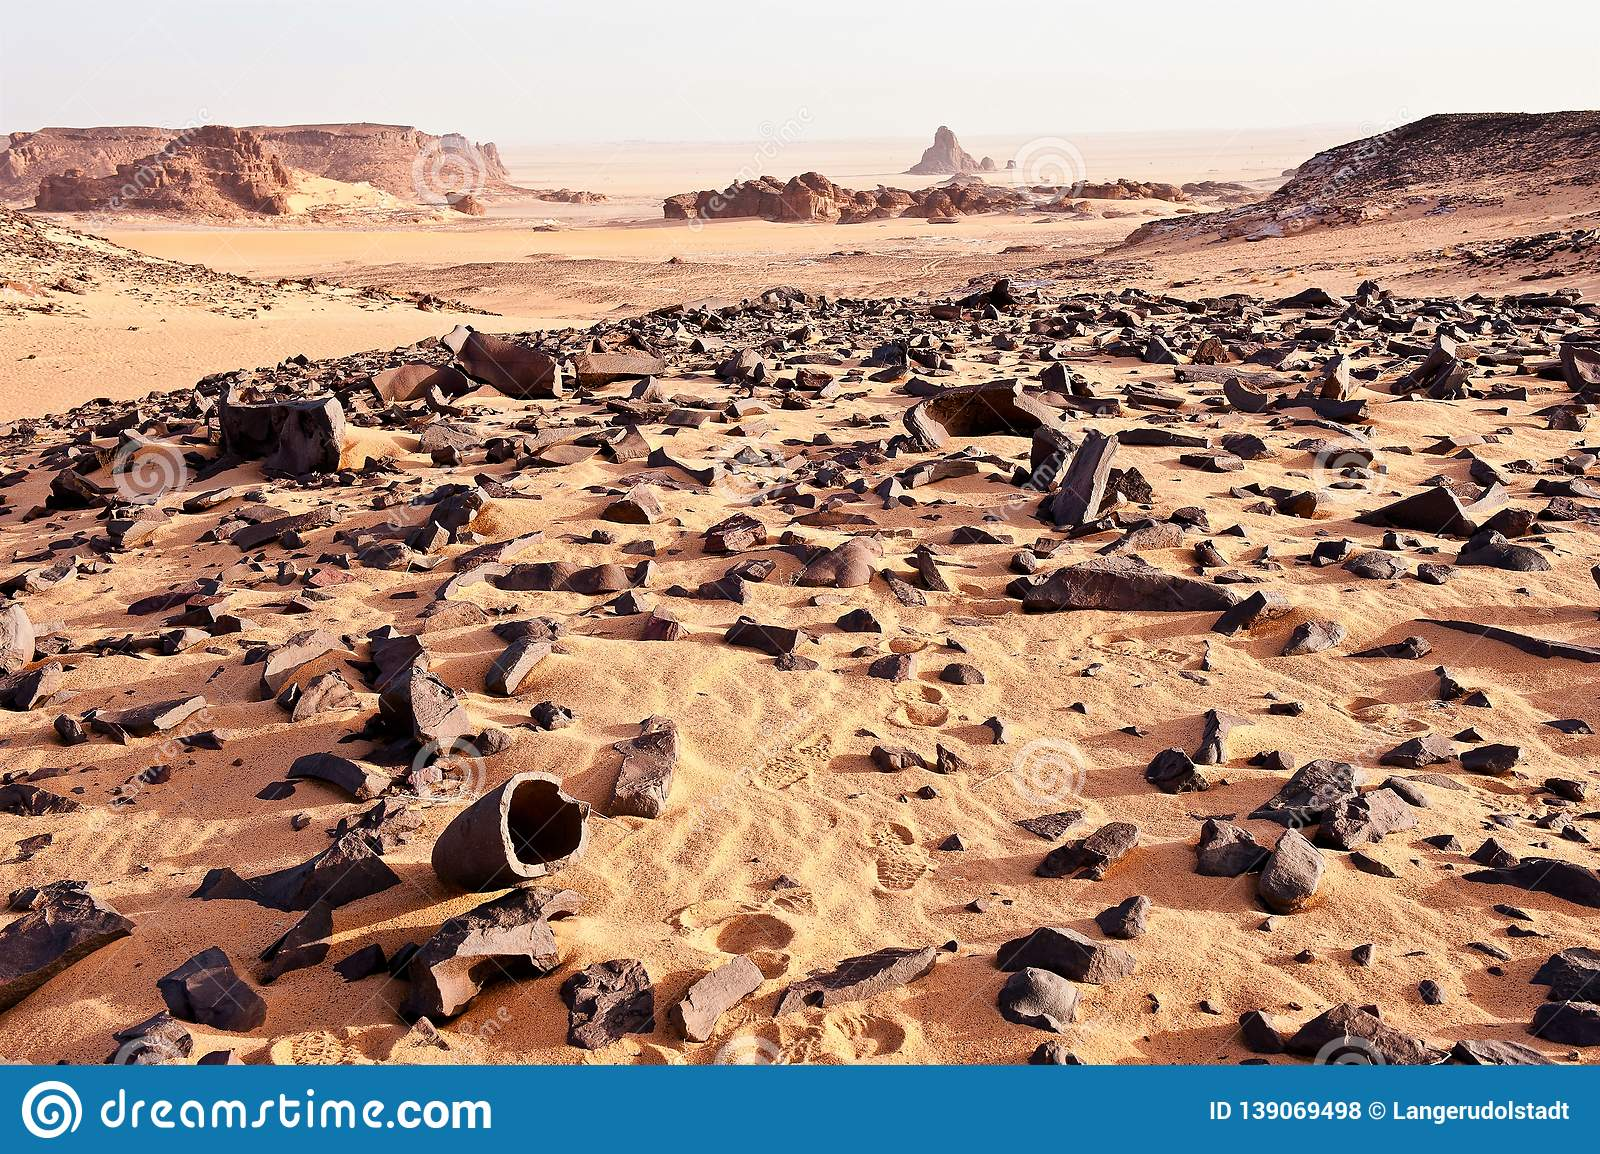 Amasing and great landscape. Remains of a petrfied wood. Sahara